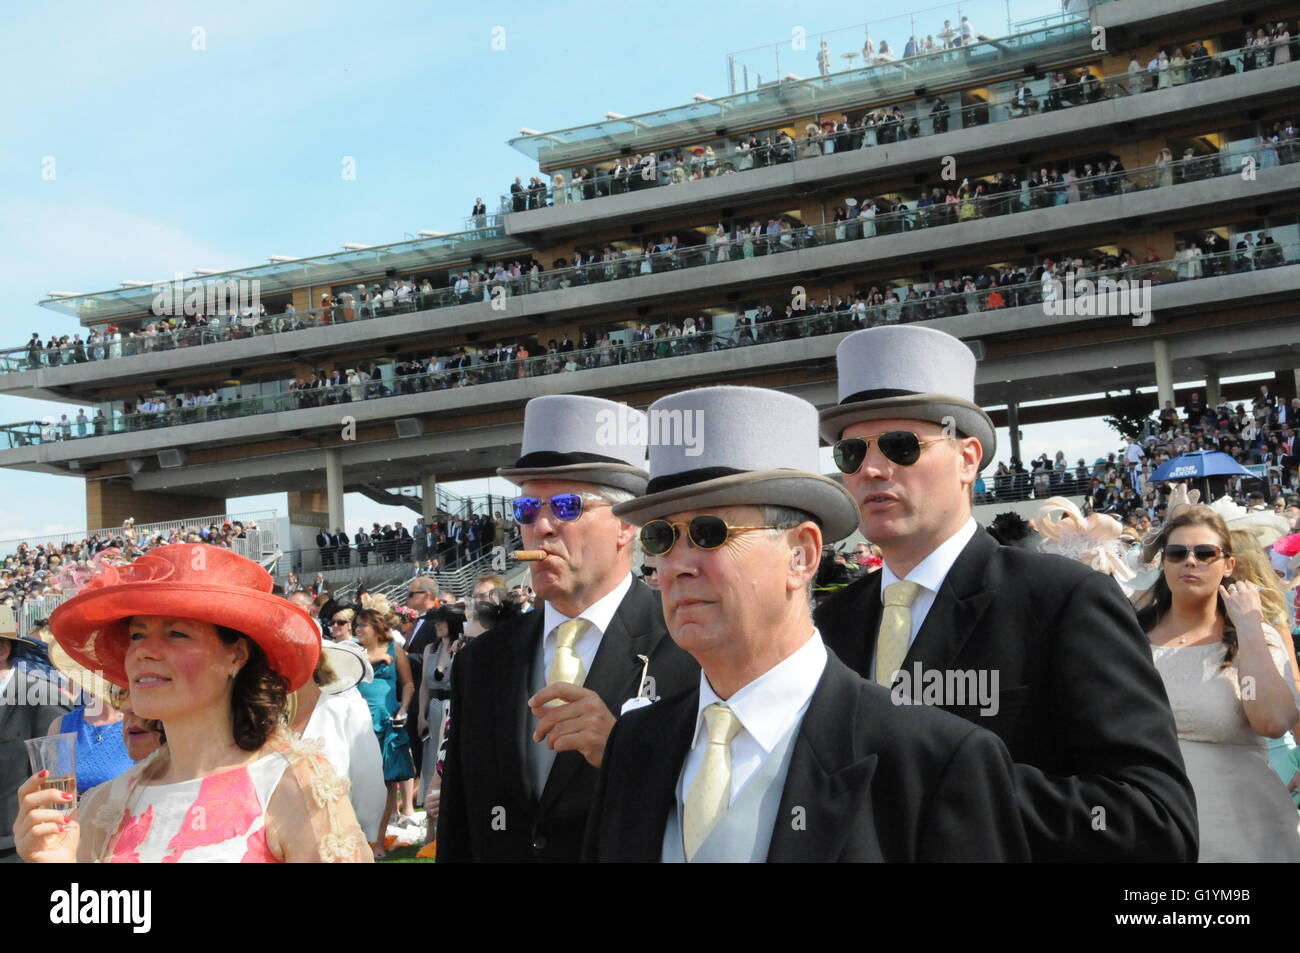 Enjoying the races, at Royal Ascot horse race meeting. - Stock Image